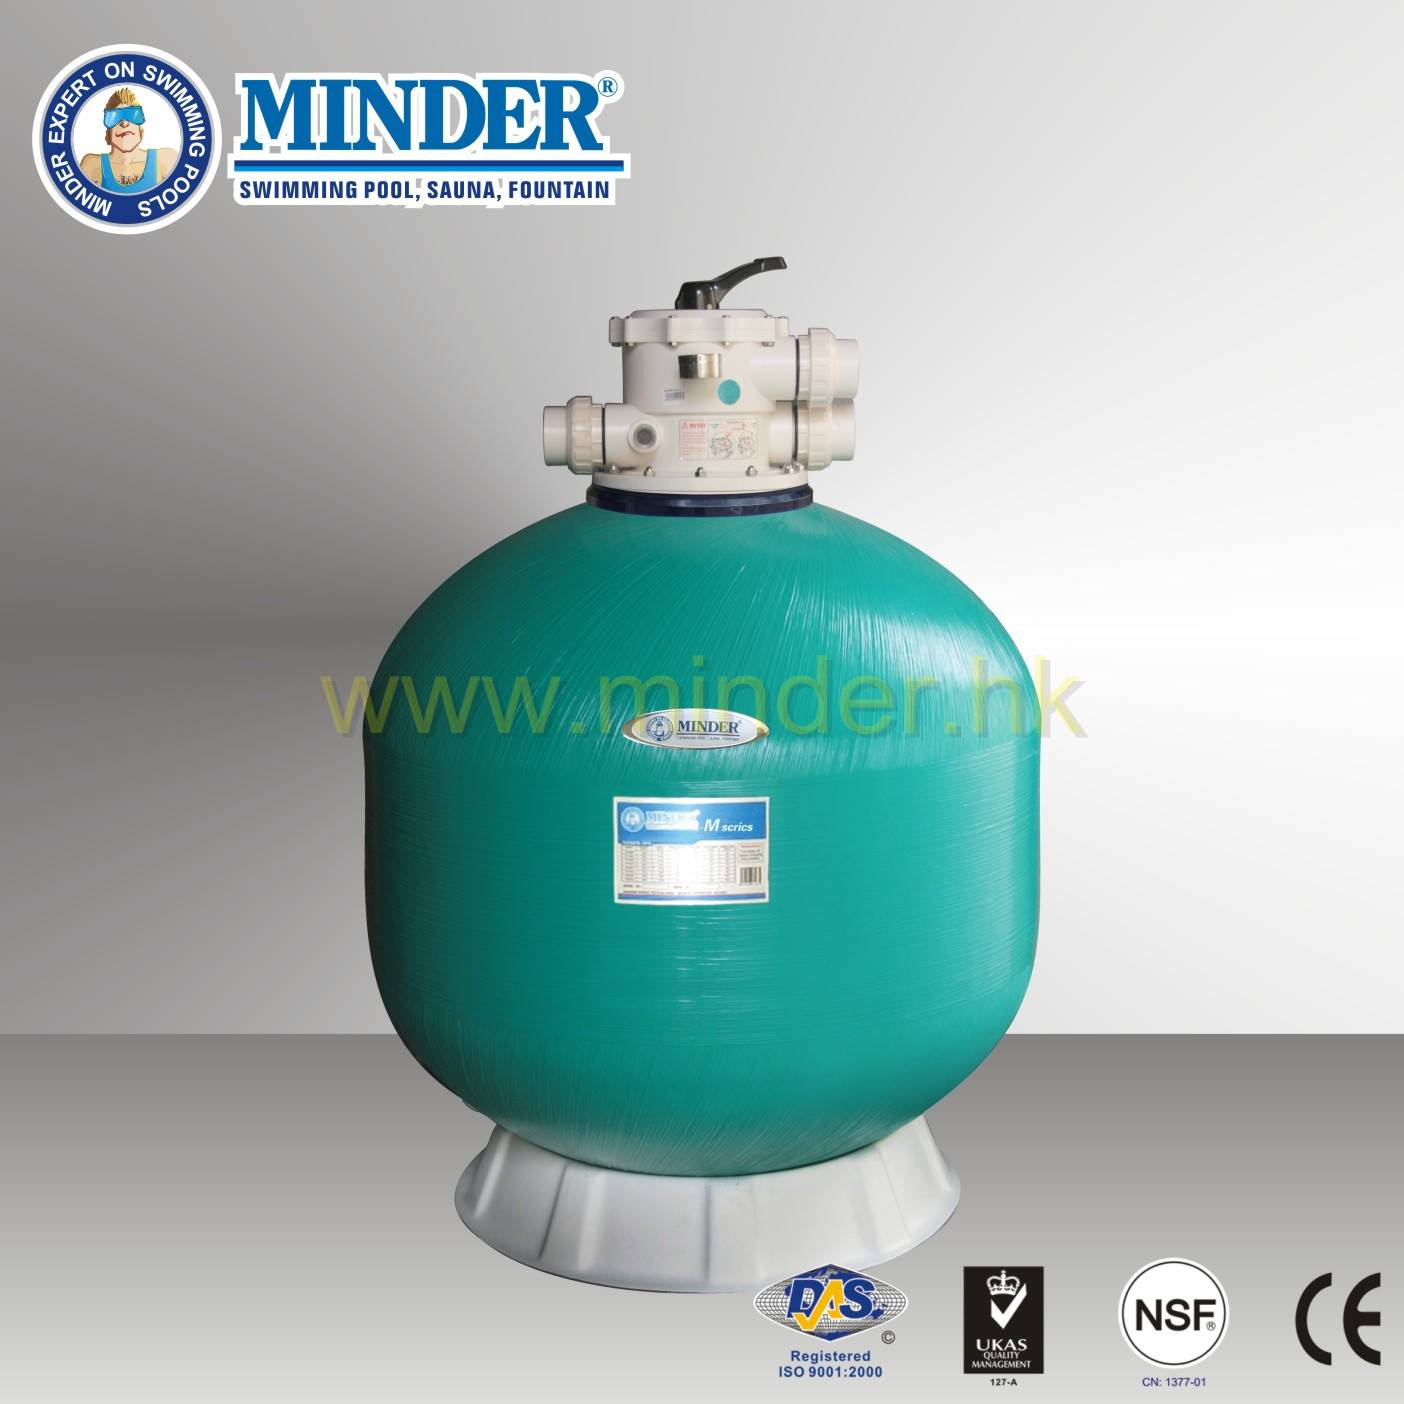 Firberglass 2.0 inch Valve Swimming Pool Sand Filter